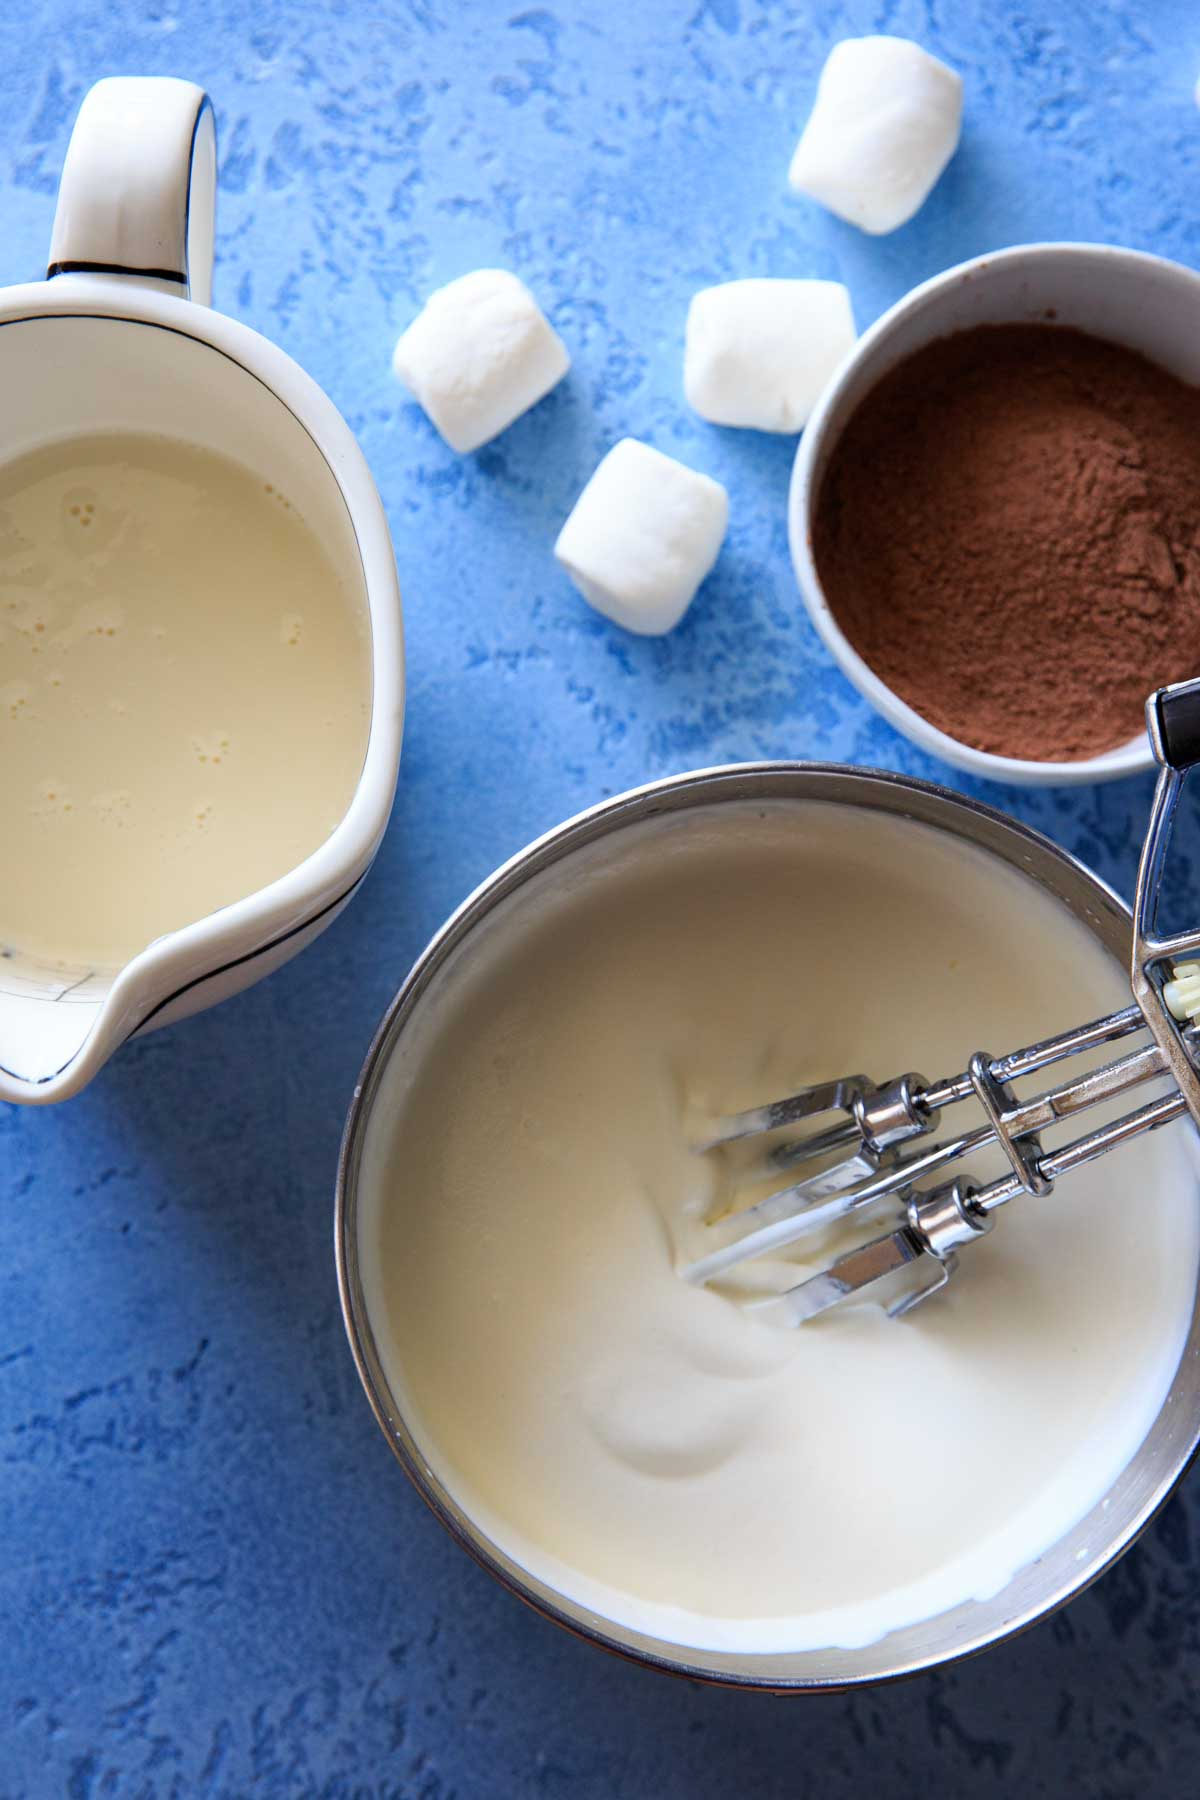 Hot Chocolate Ice Cream ingredients - homemade sweetened condensed milk, whipped whipping cream and hot chocolate mix